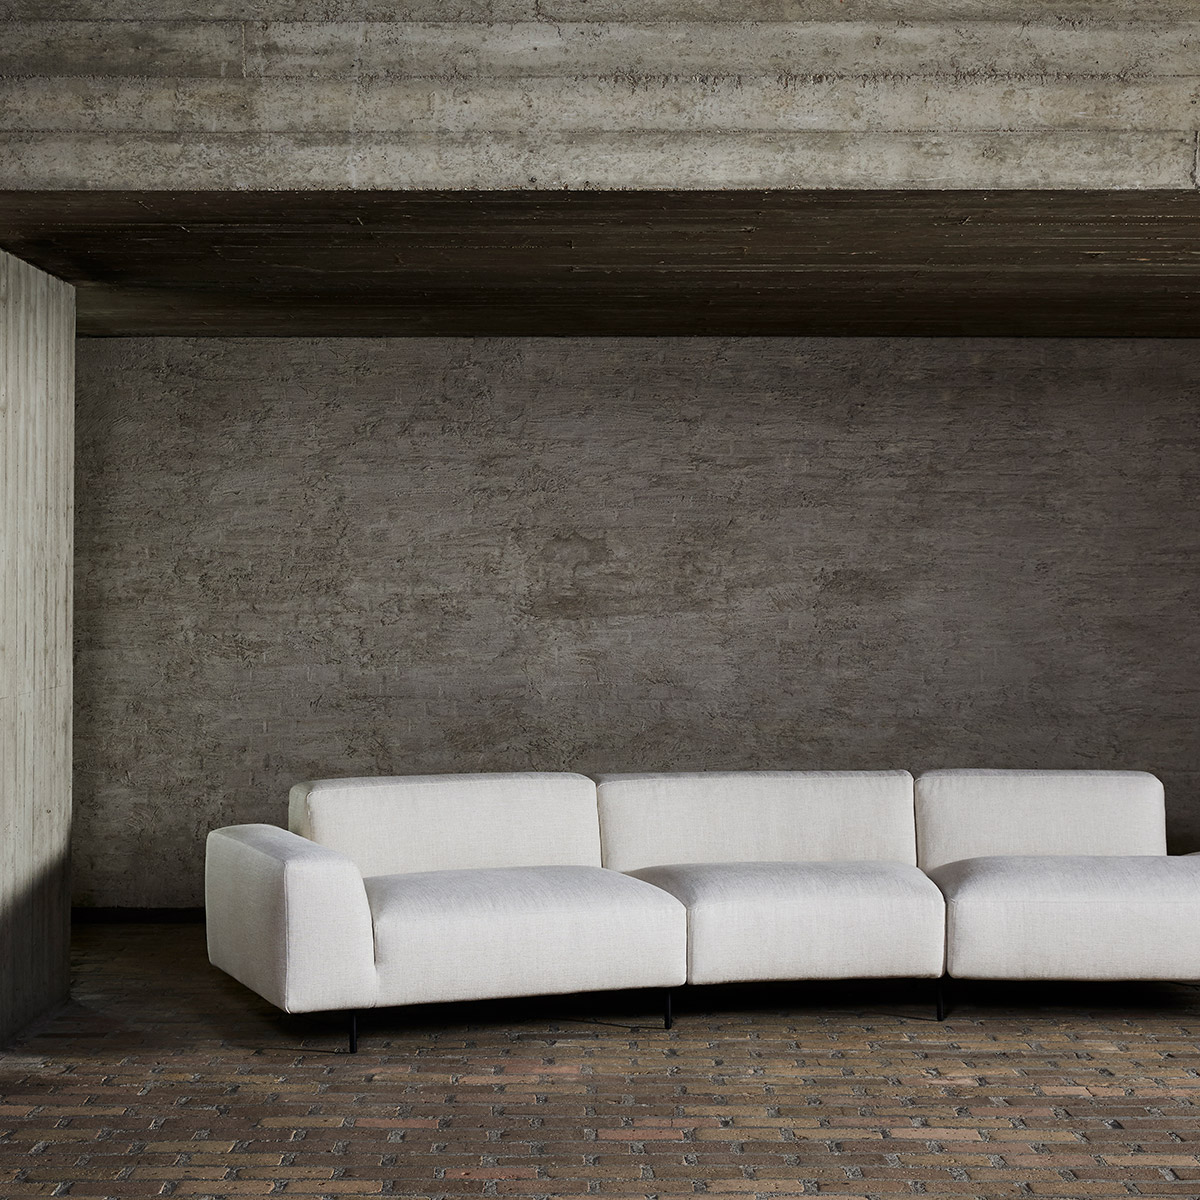 Endless sofa by Bensen in cream fabric against a concrete wall